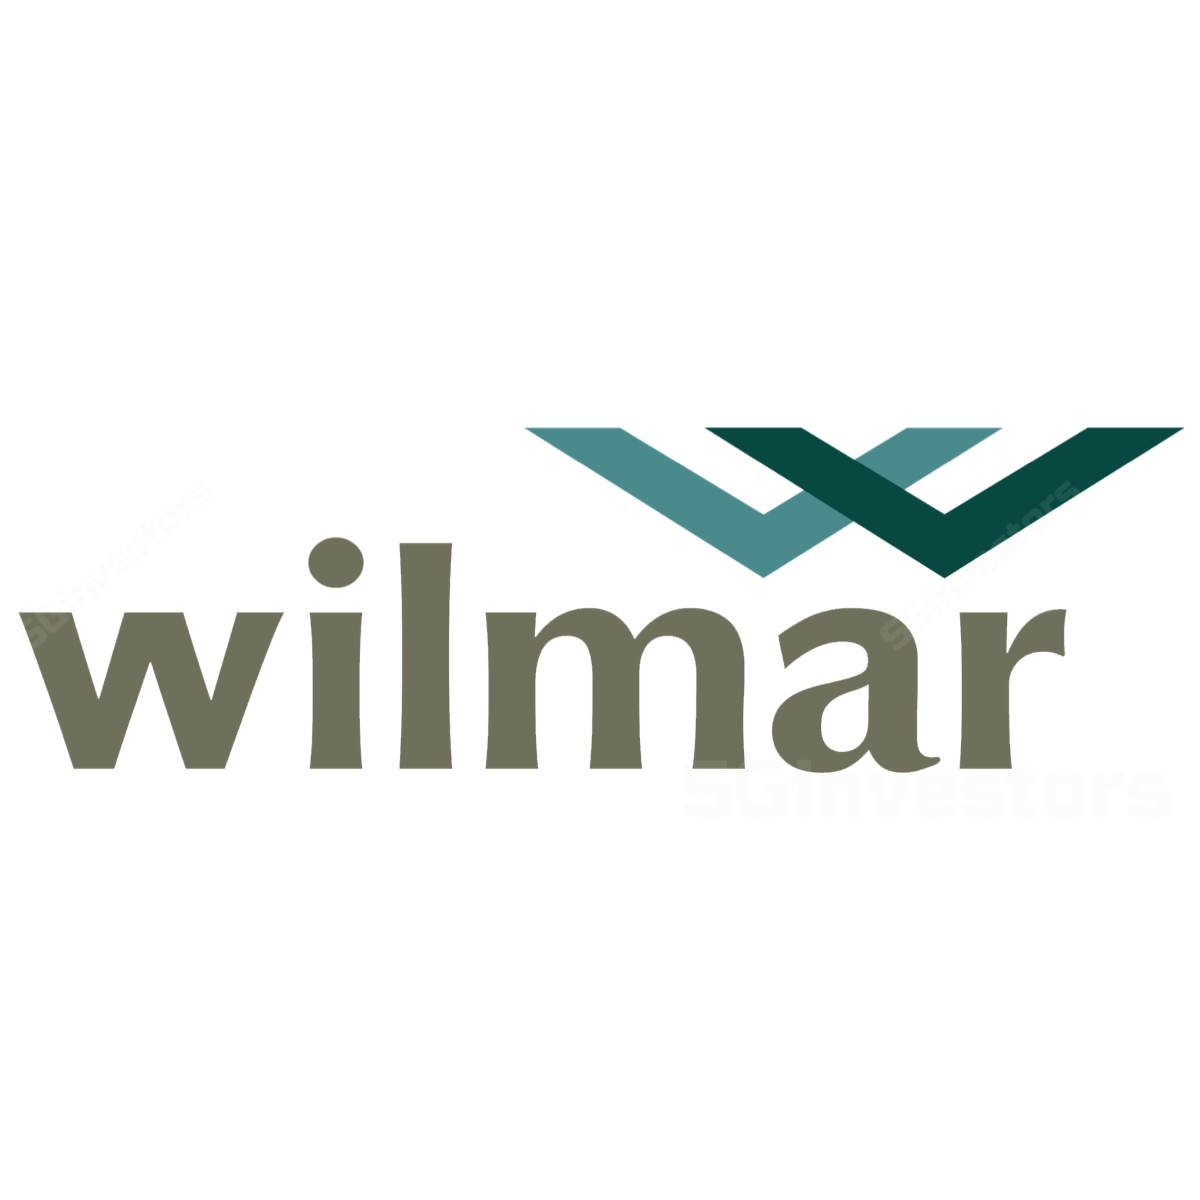 Wilmar International - DBS Vickers 2018-07-02: Concerns Priced In